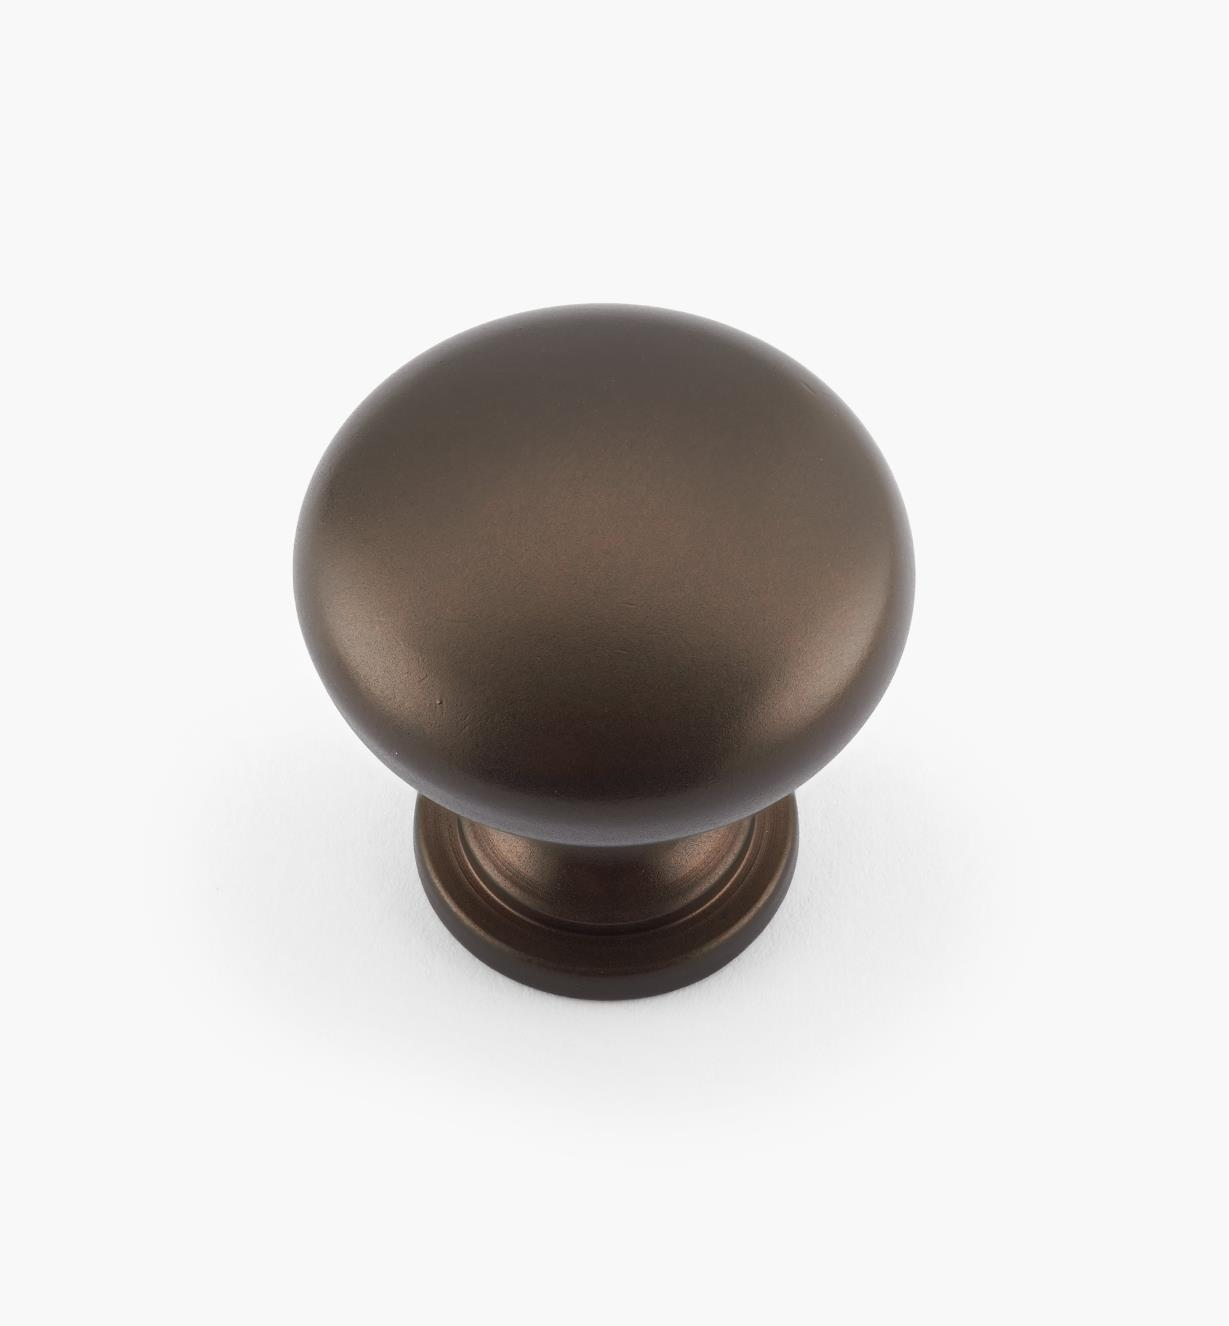 "02W4085 - 1 3/16"" x 1 3/16"" Oil-Rubbed Bronze Round Knob"